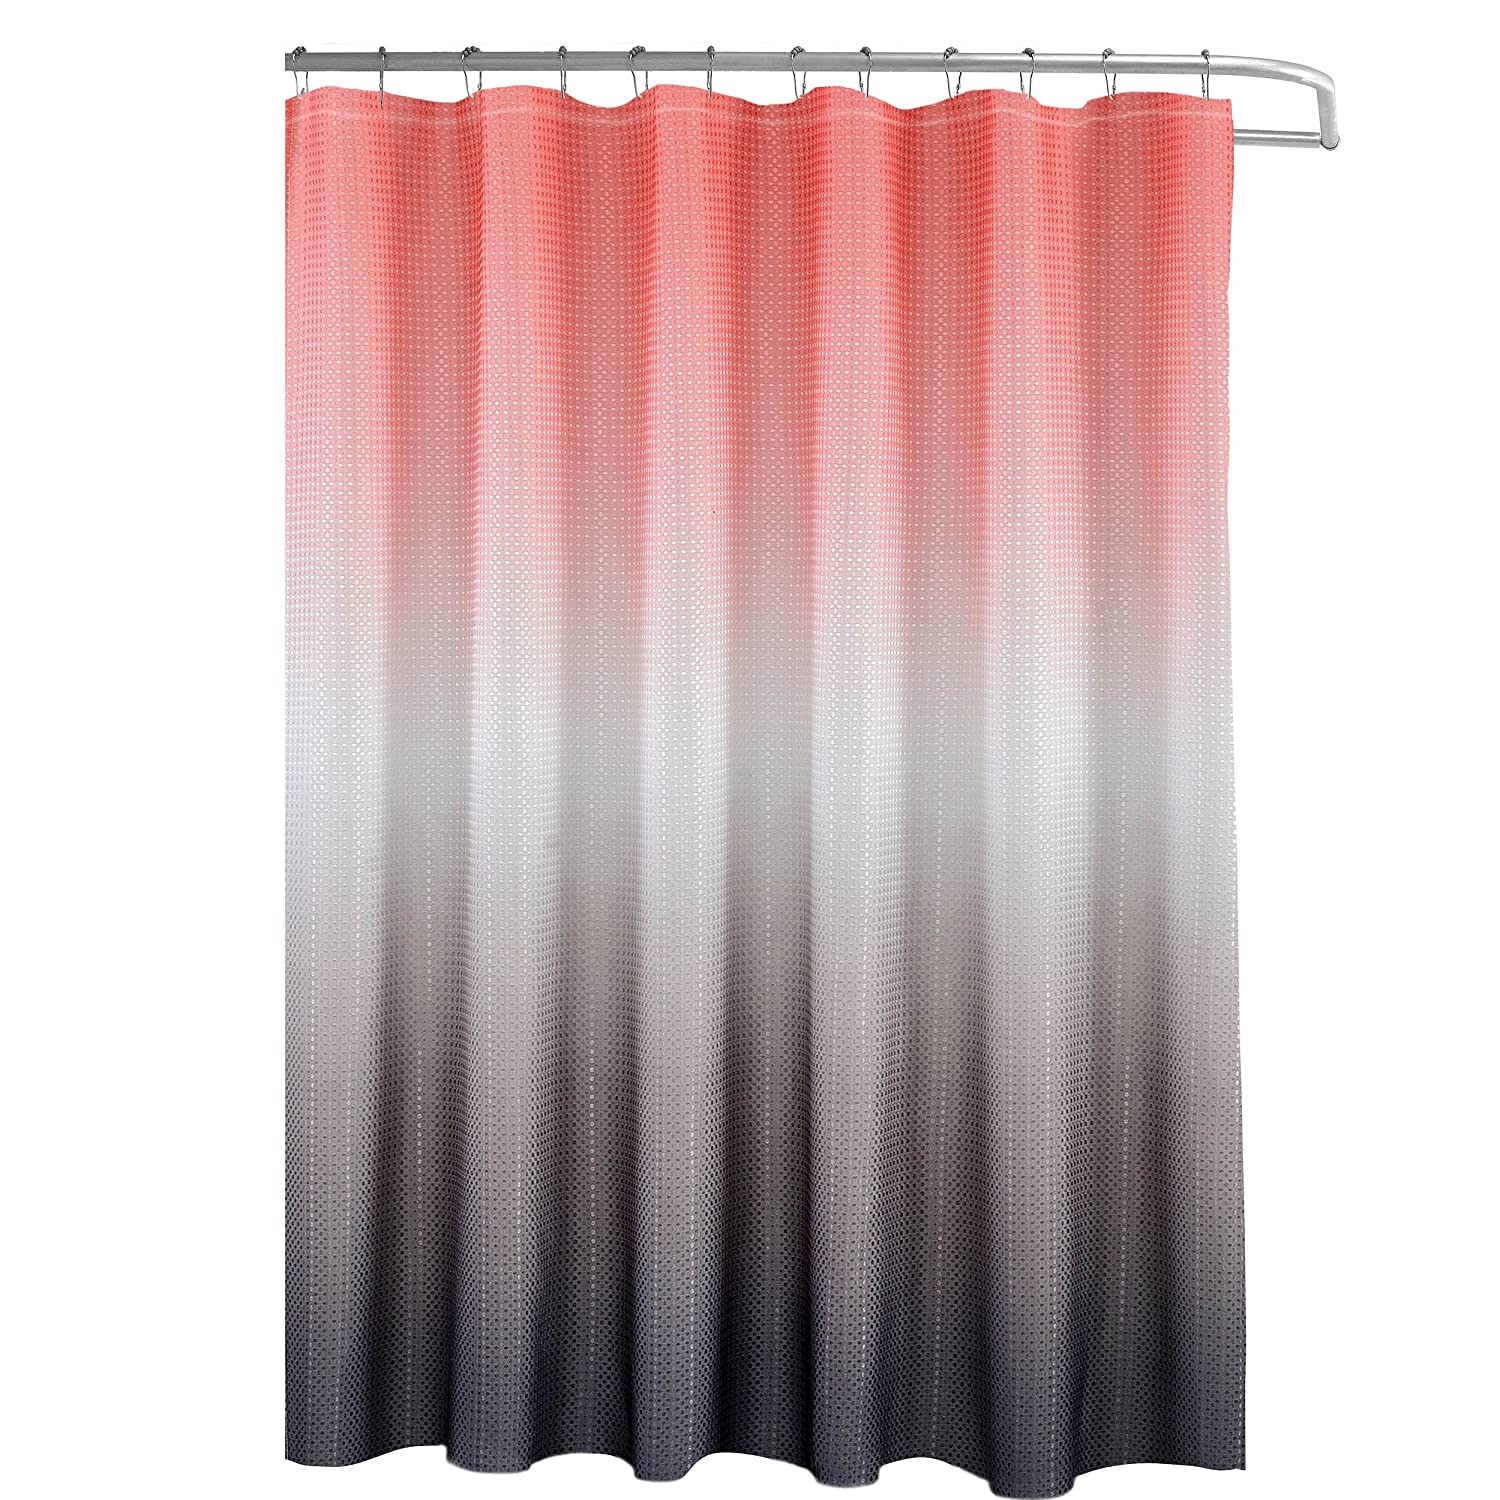 Amazon.com: Creative Home Ideas Ombre Waffle Weave Shower Curtain Set, Coral/Grey: Home & Kitchen